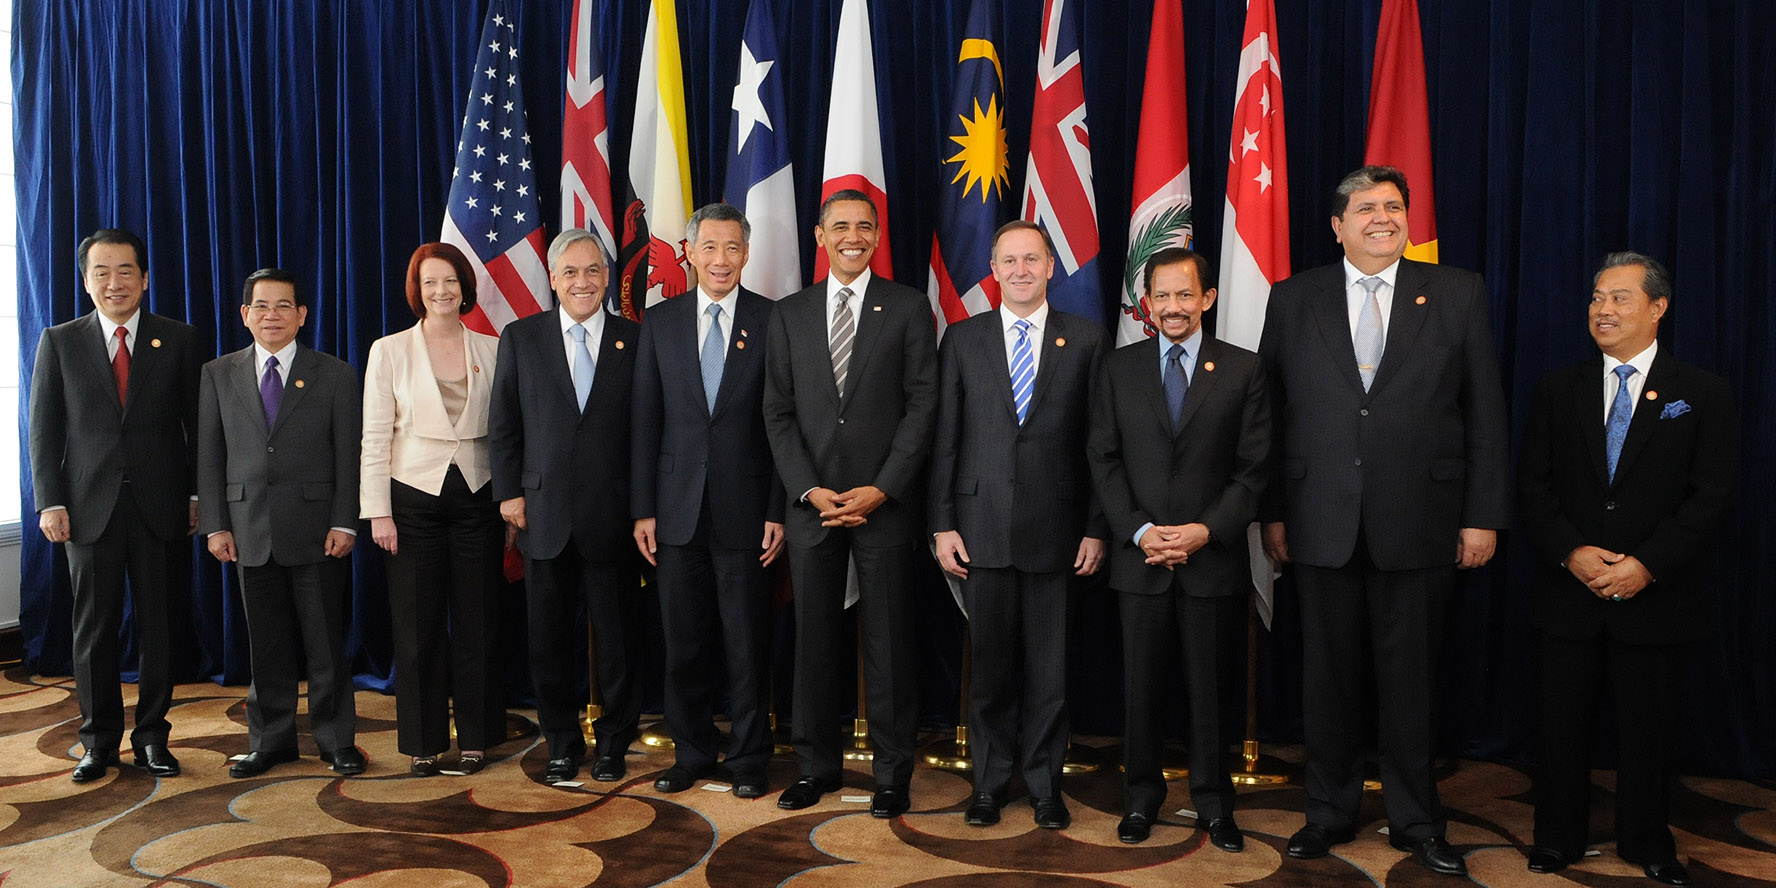 Leaders of prospective member states at a TPP summit in 2010 Source: https://en.wikipedia.org/wiki/Trans-Pacific_Partnership